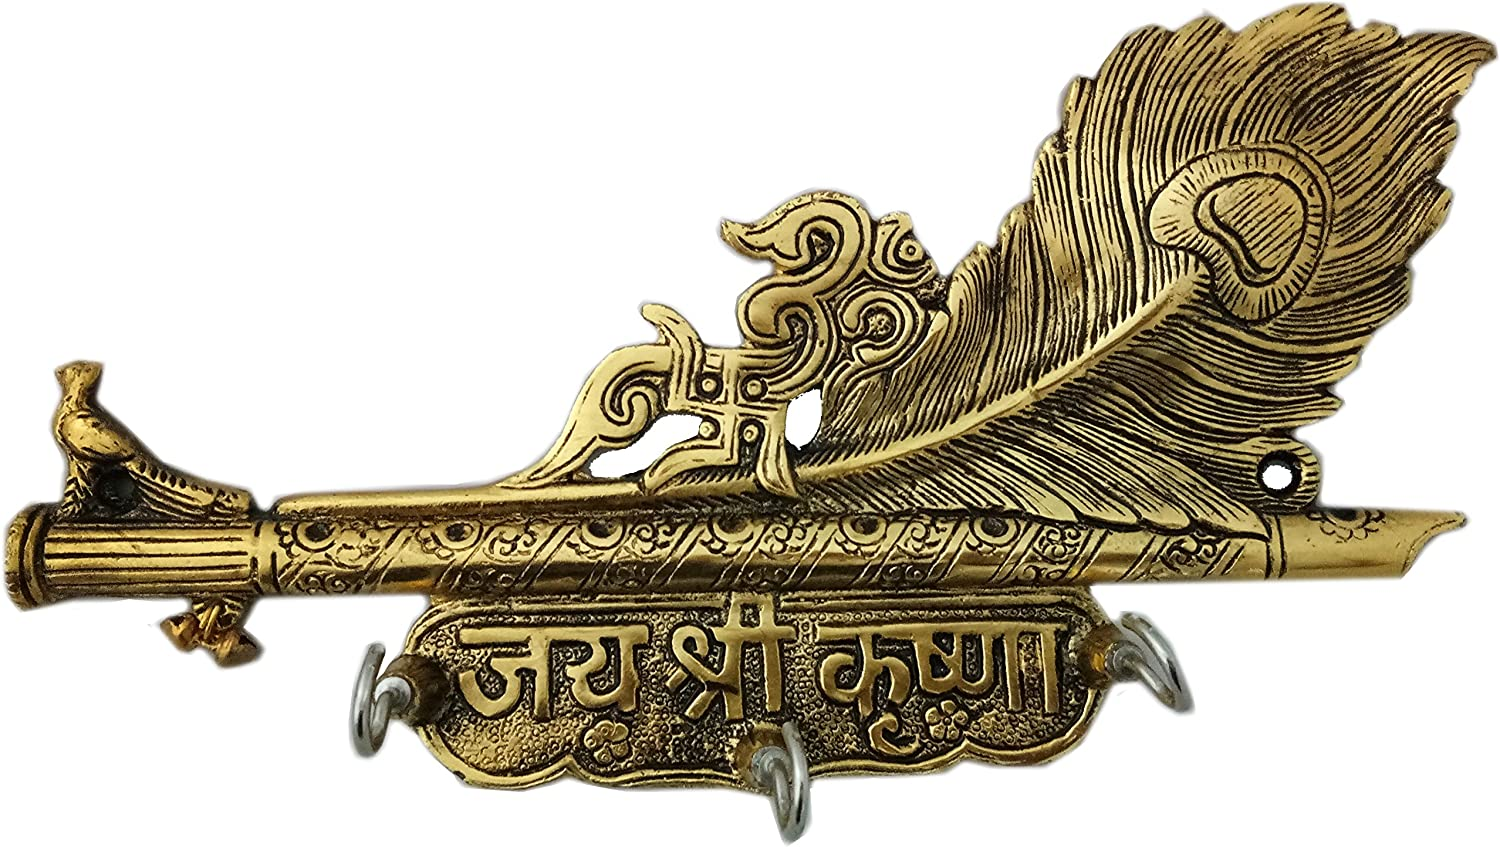 Charmy Crafts Krishna Flute & Peacock Quills Metal Key Holder for Home and Office Wall Hanging Showpiece